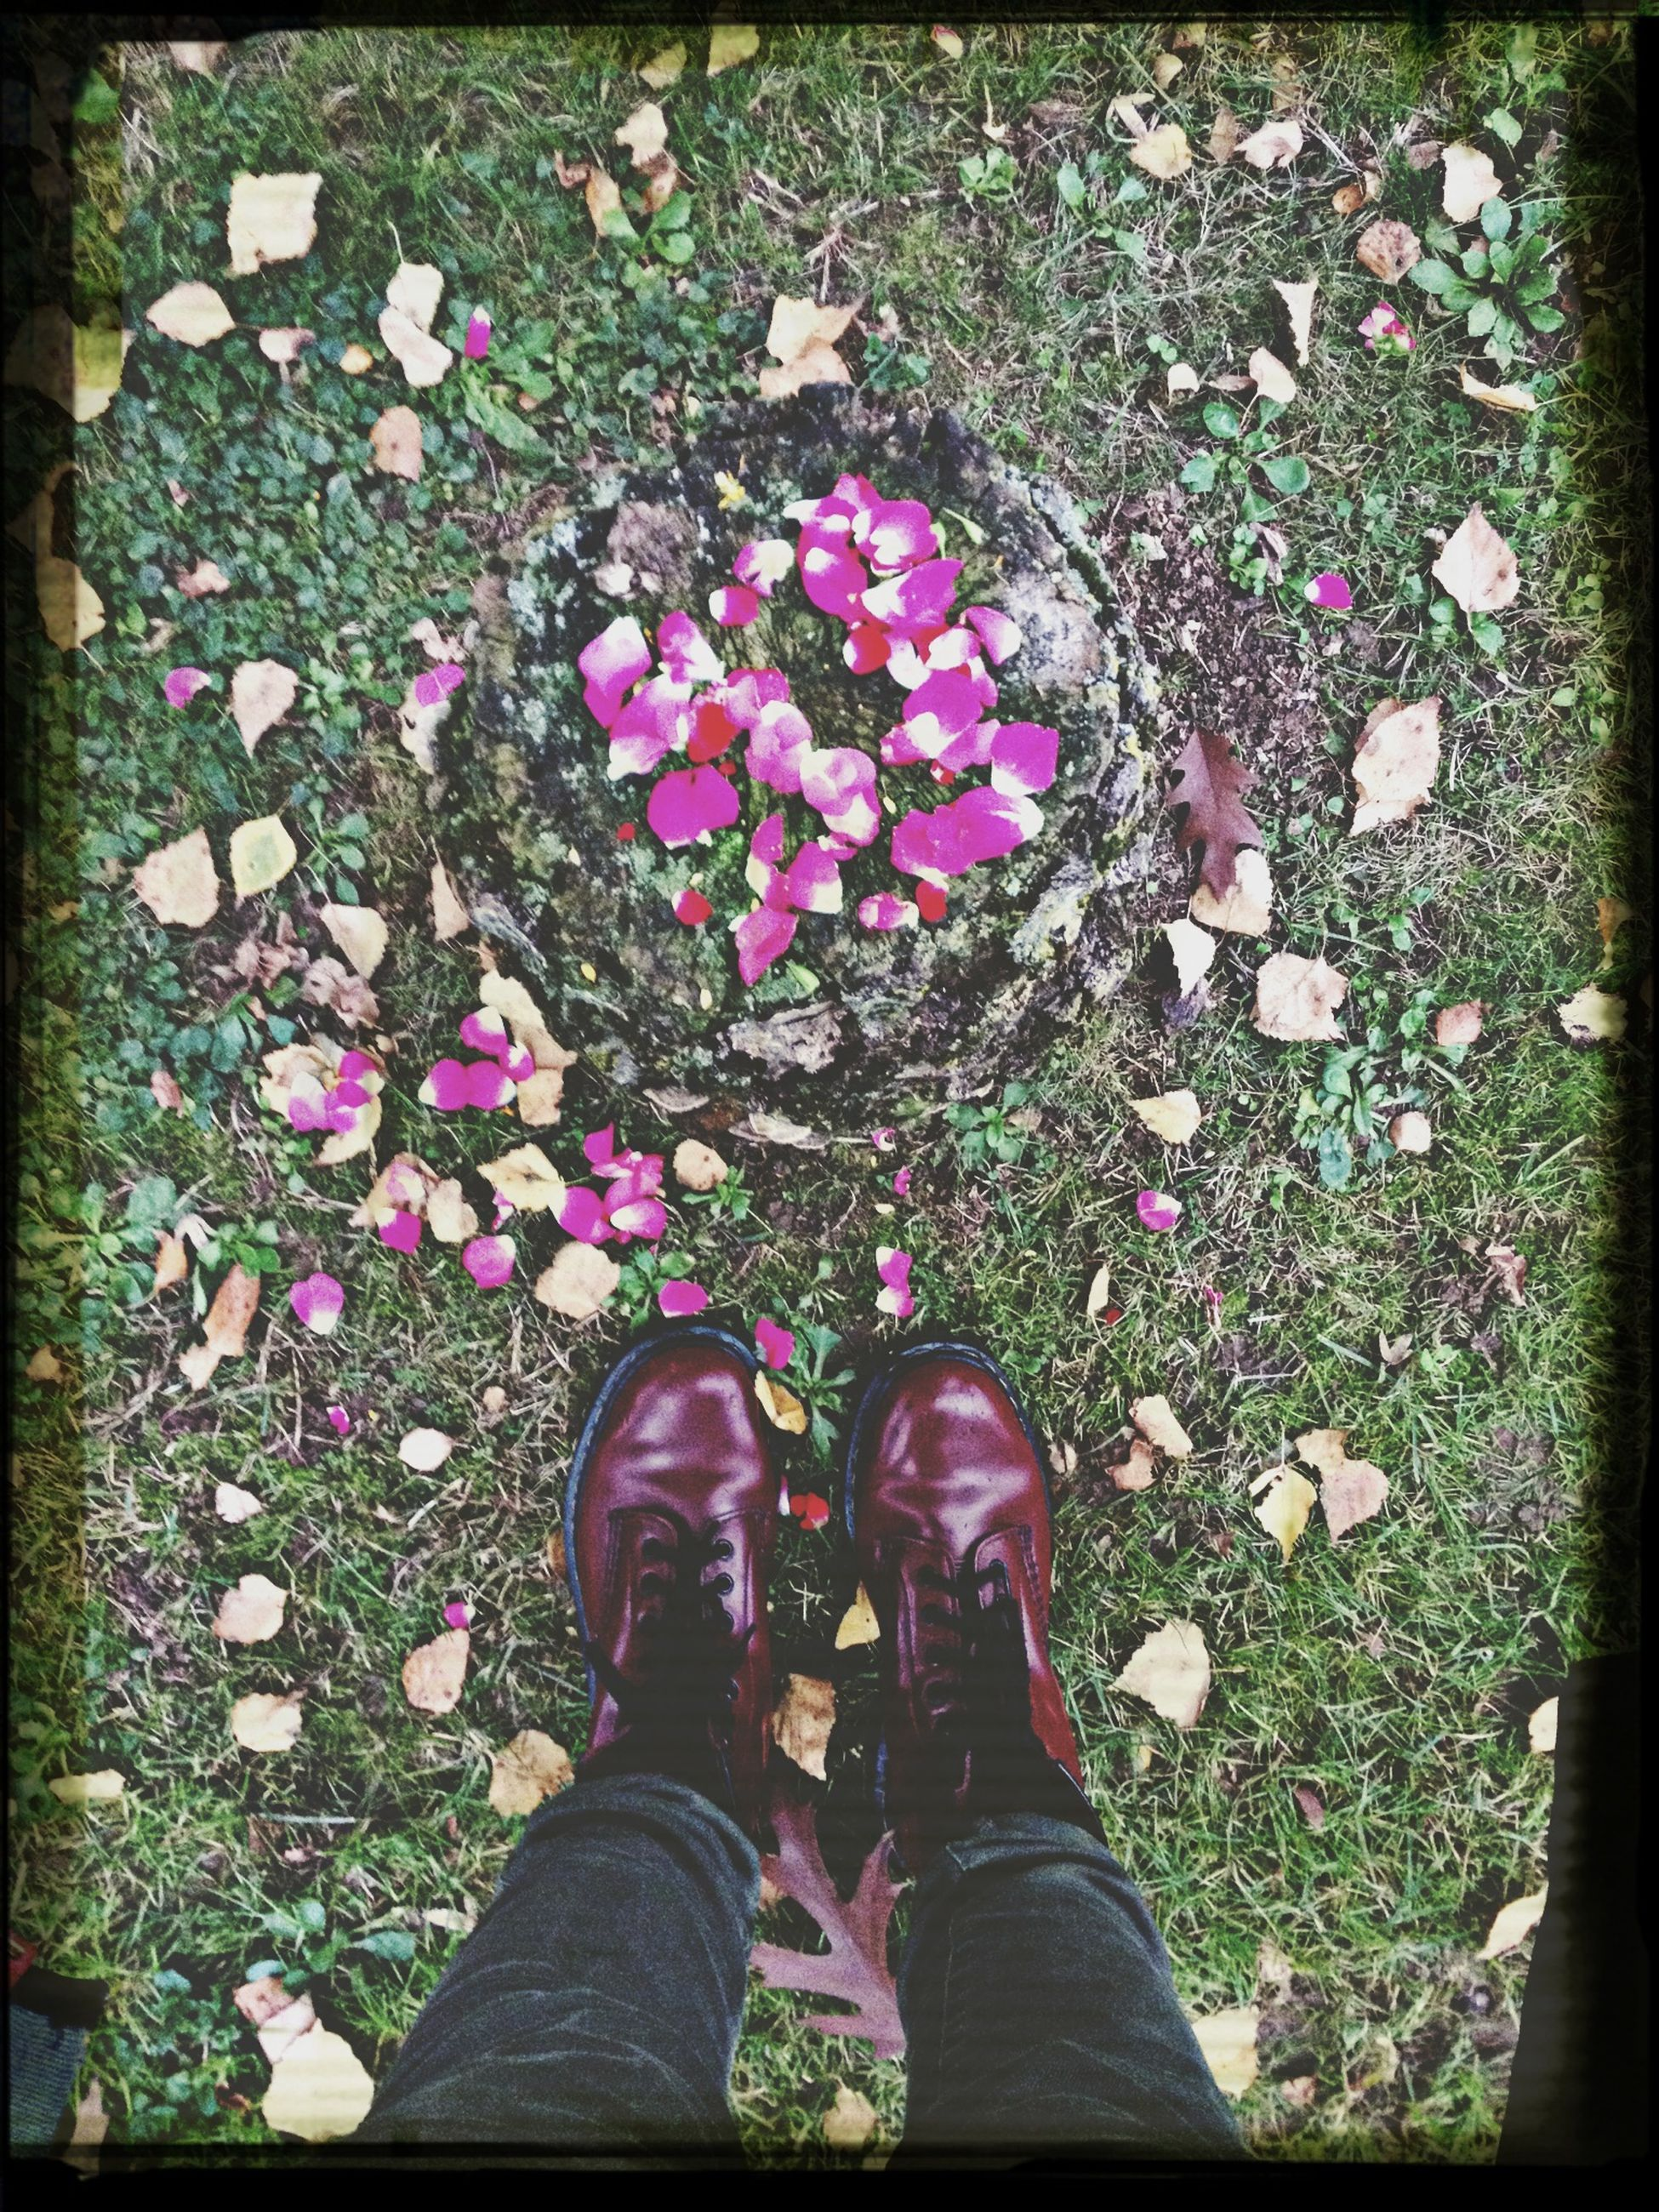 flower, low section, person, lifestyles, high angle view, leisure activity, grass, field, shoe, transfer print, standing, auto post production filter, men, fragility, human foot, nature